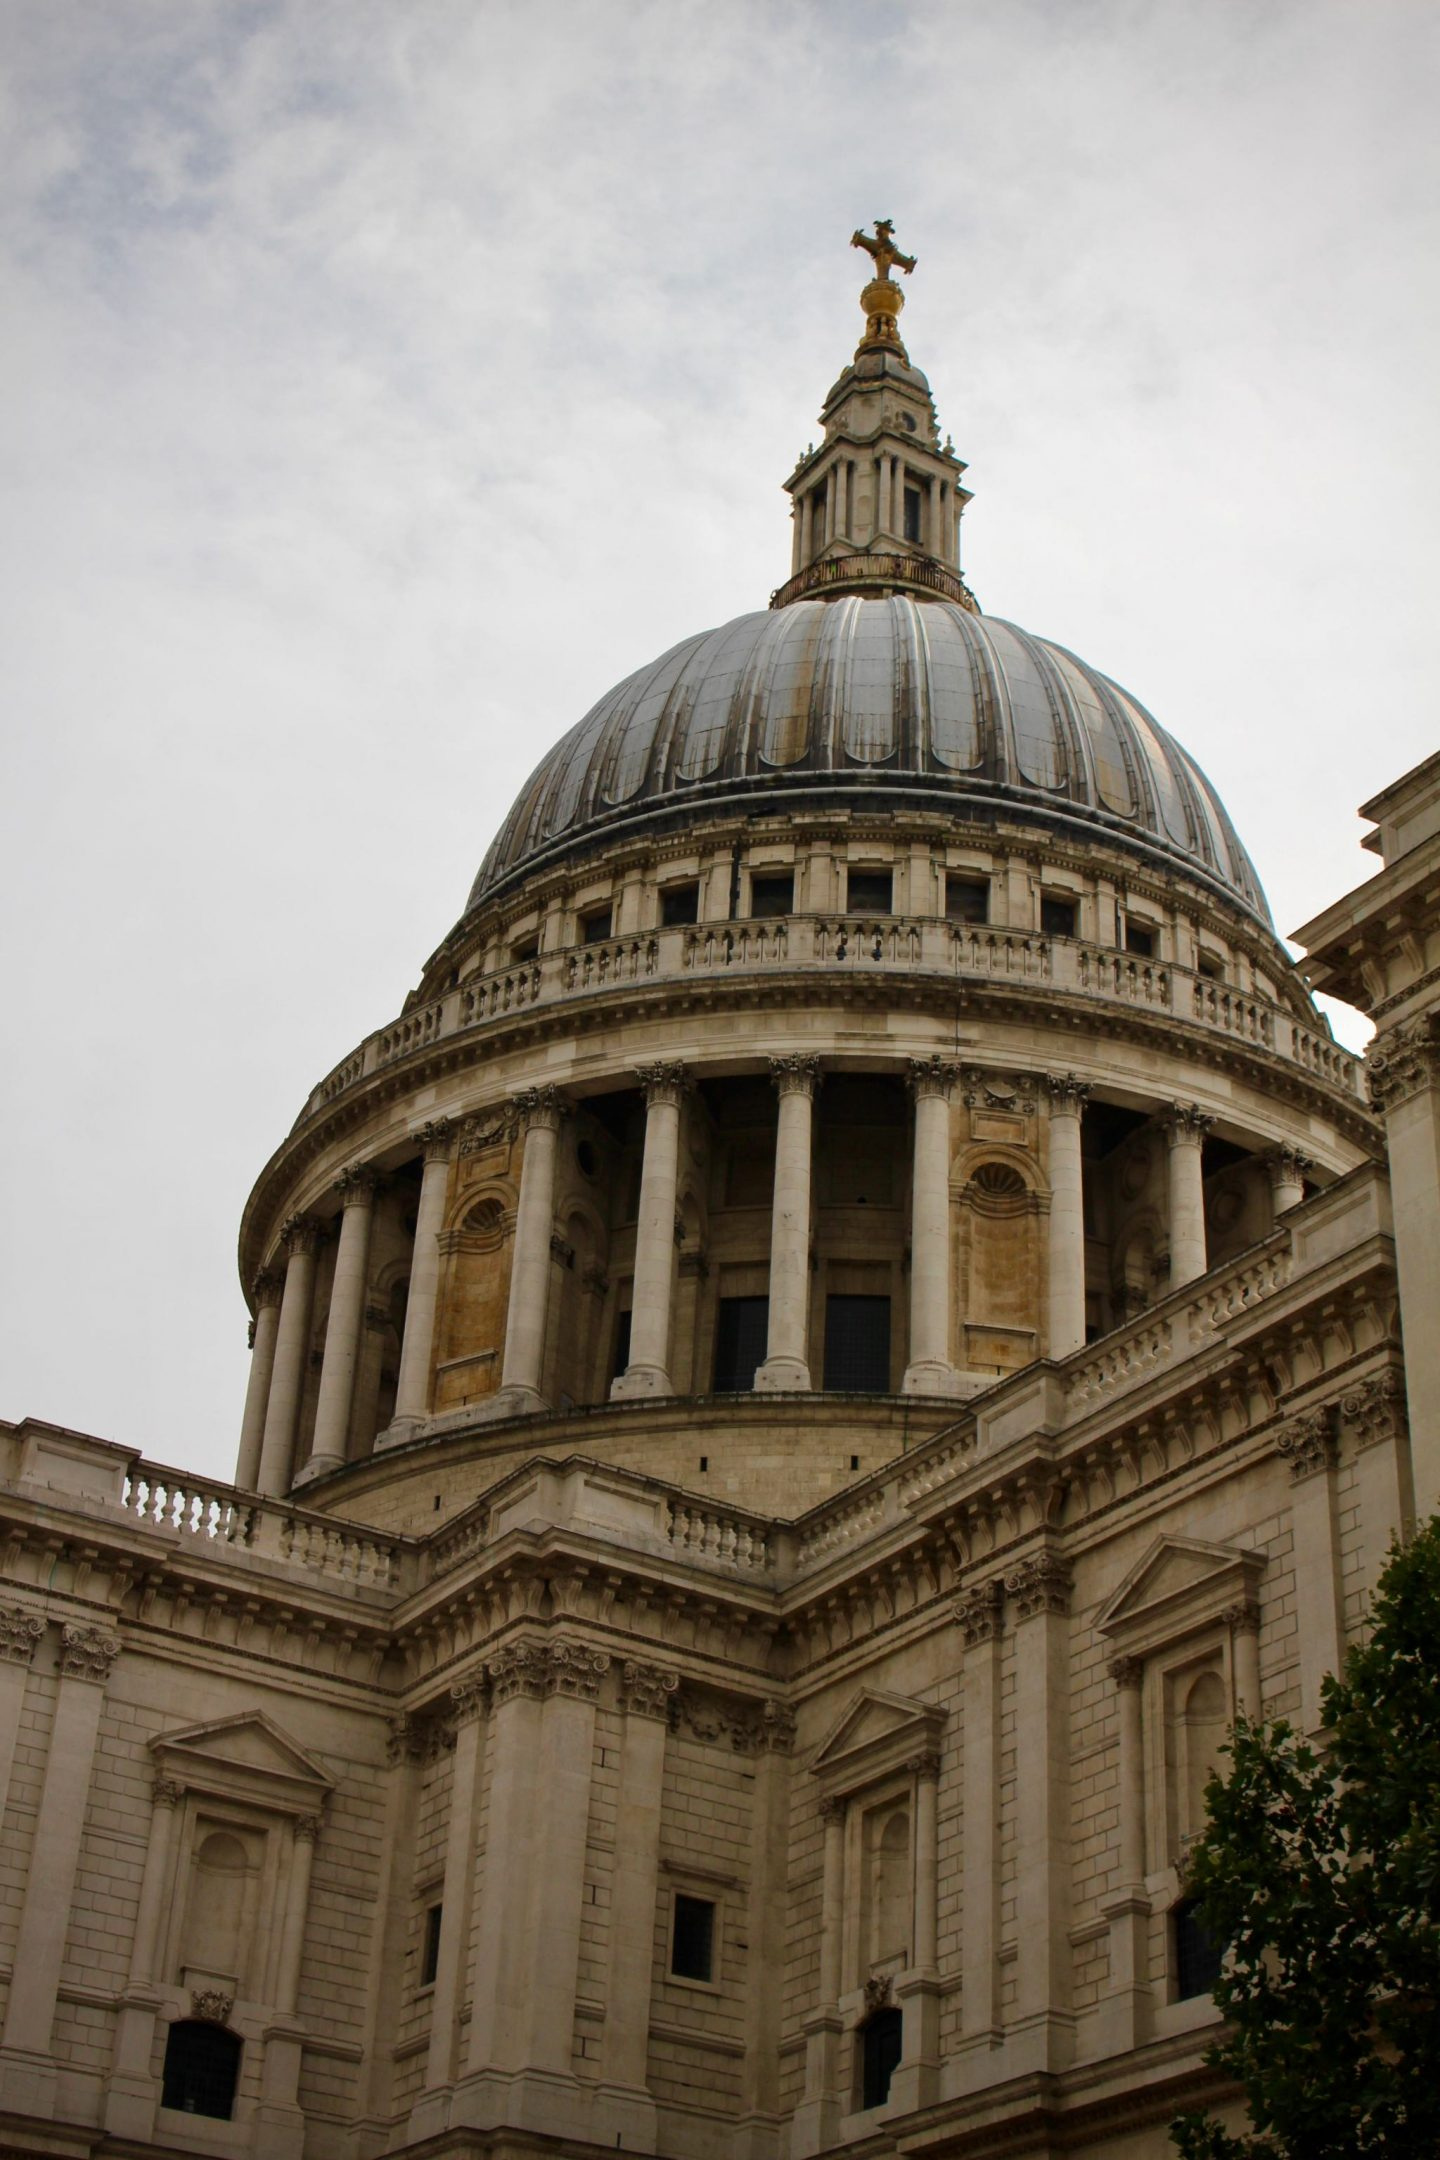 London St. Paul's Cathedral ... The Spectacular Adventurer